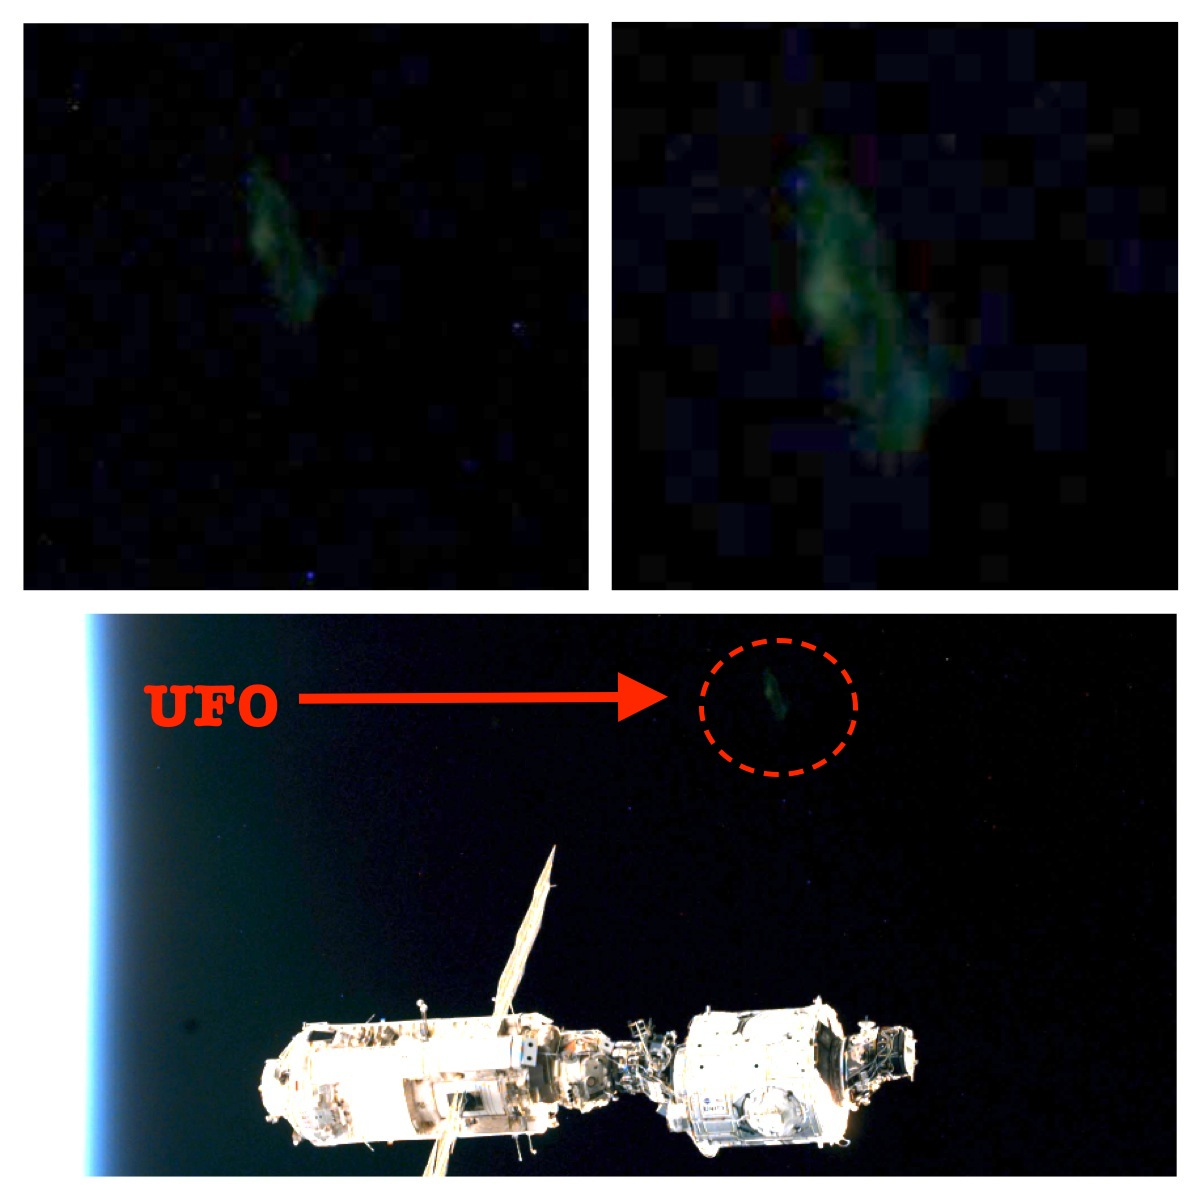 nasa ufos in space - photo #45